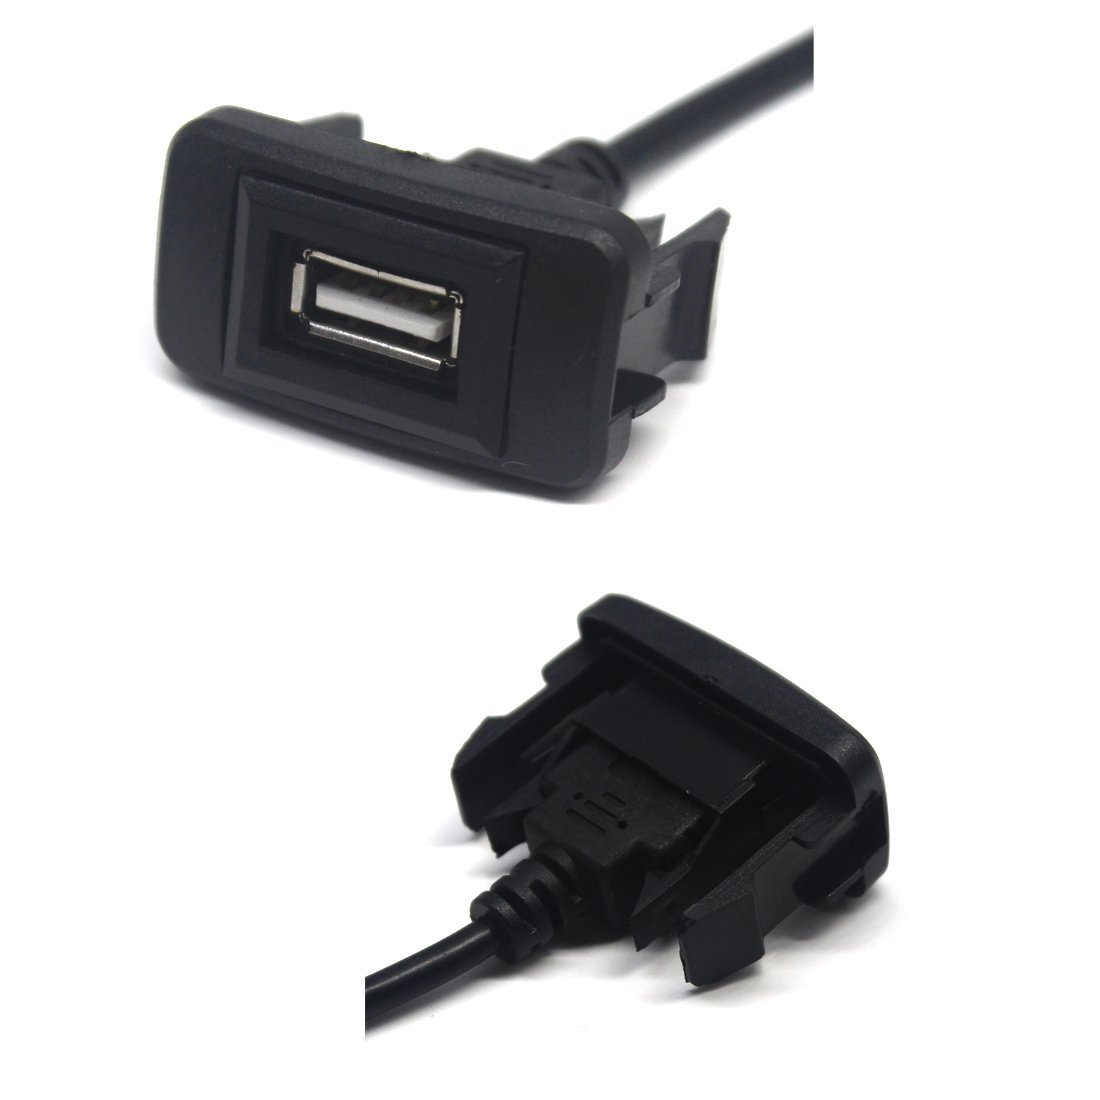 MOTONG Male To Female USB Cable Charger For Toyota VIOS//ALTIS 4327076752 Toyota USB 2.0 Charger 35 24mm